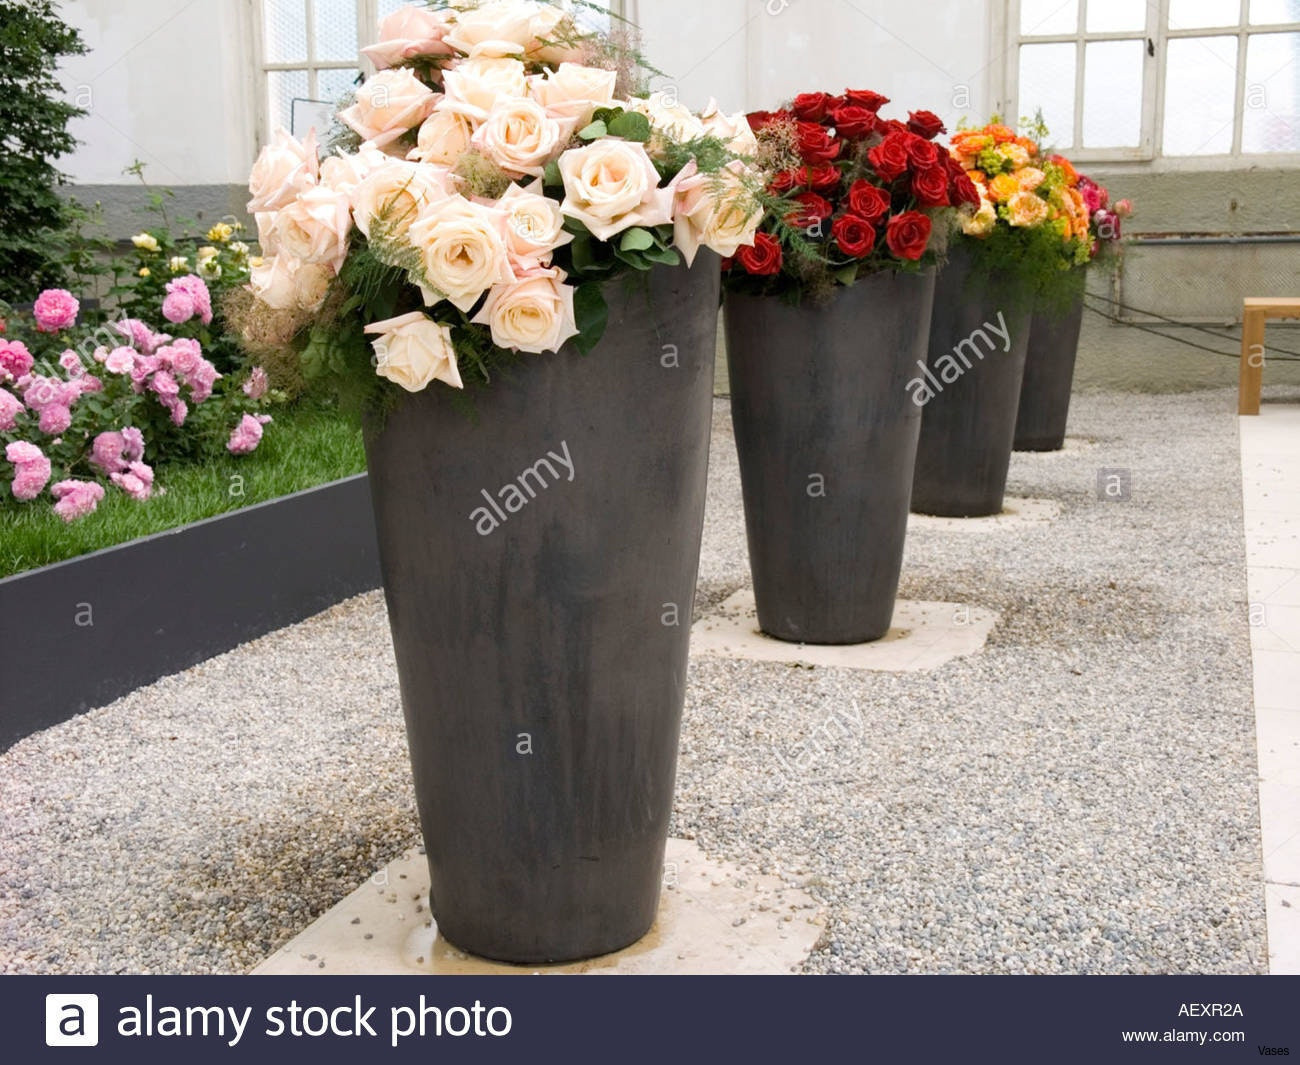 proflowers free vase of collection of big vases with flowers vases artificial plants with big vases with flowers collection wedding flower decorations awesome articles with flower vases for of collection